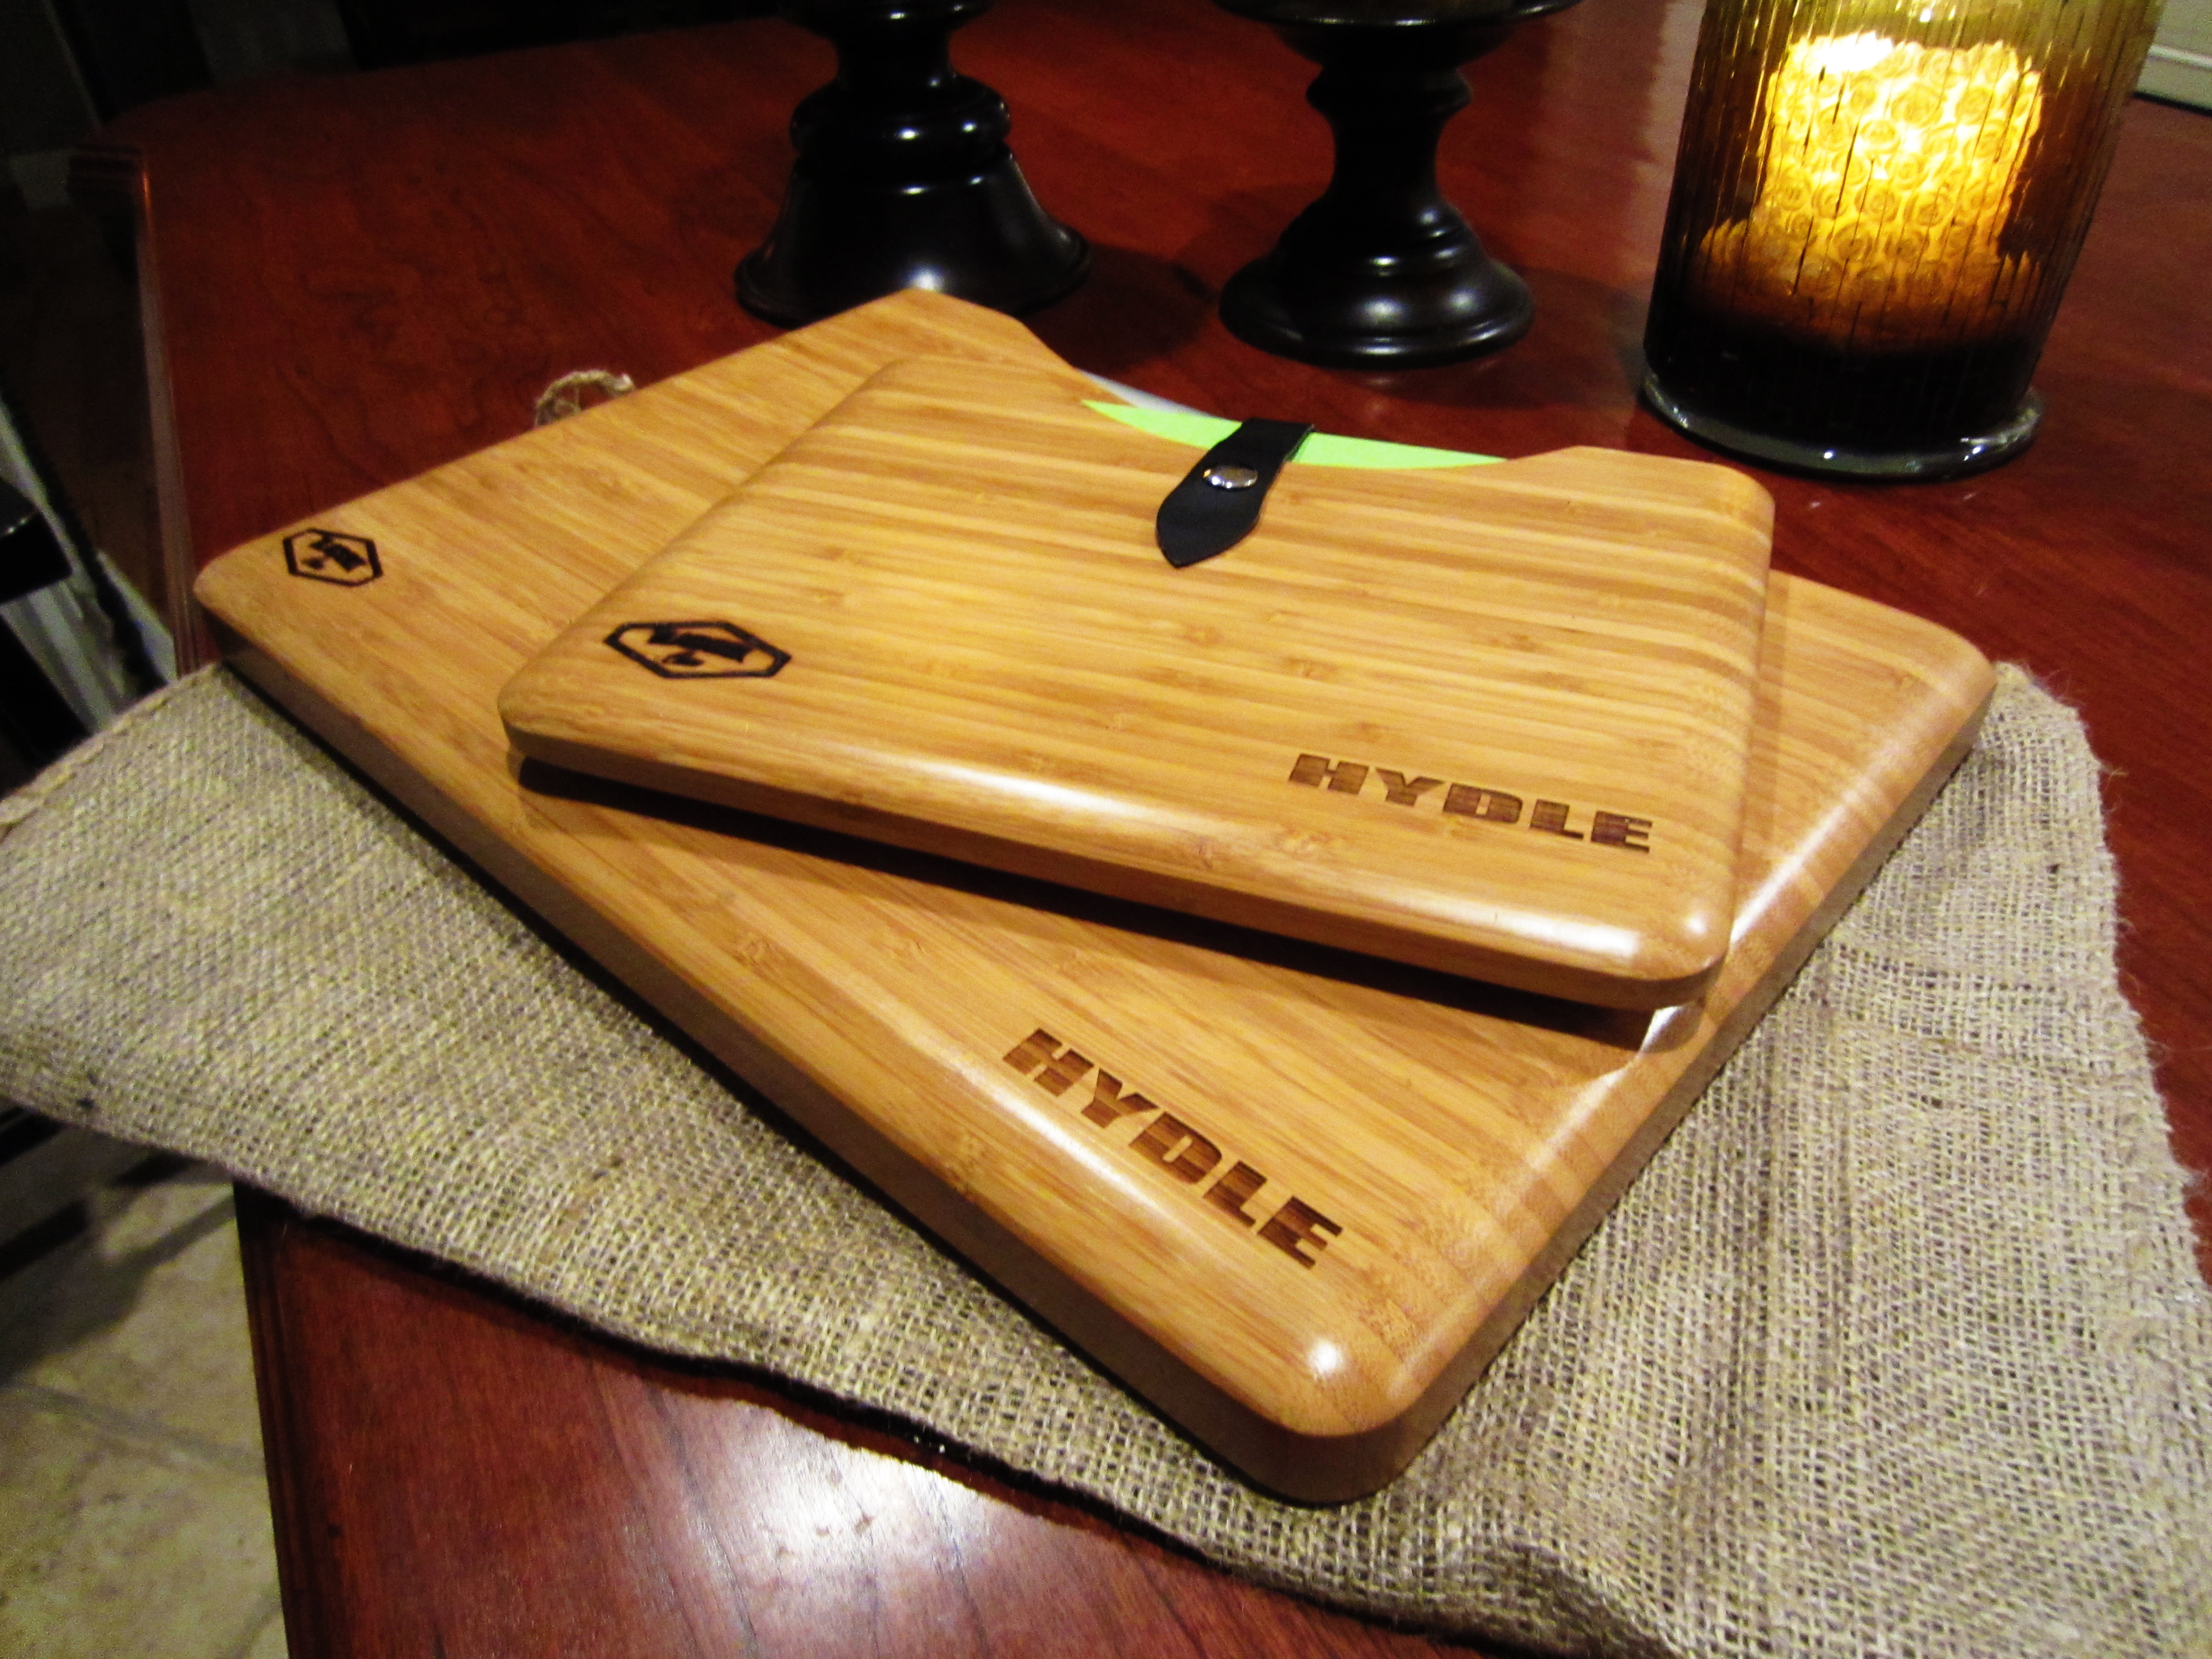 Hydle Bamboo Blackbox Cases